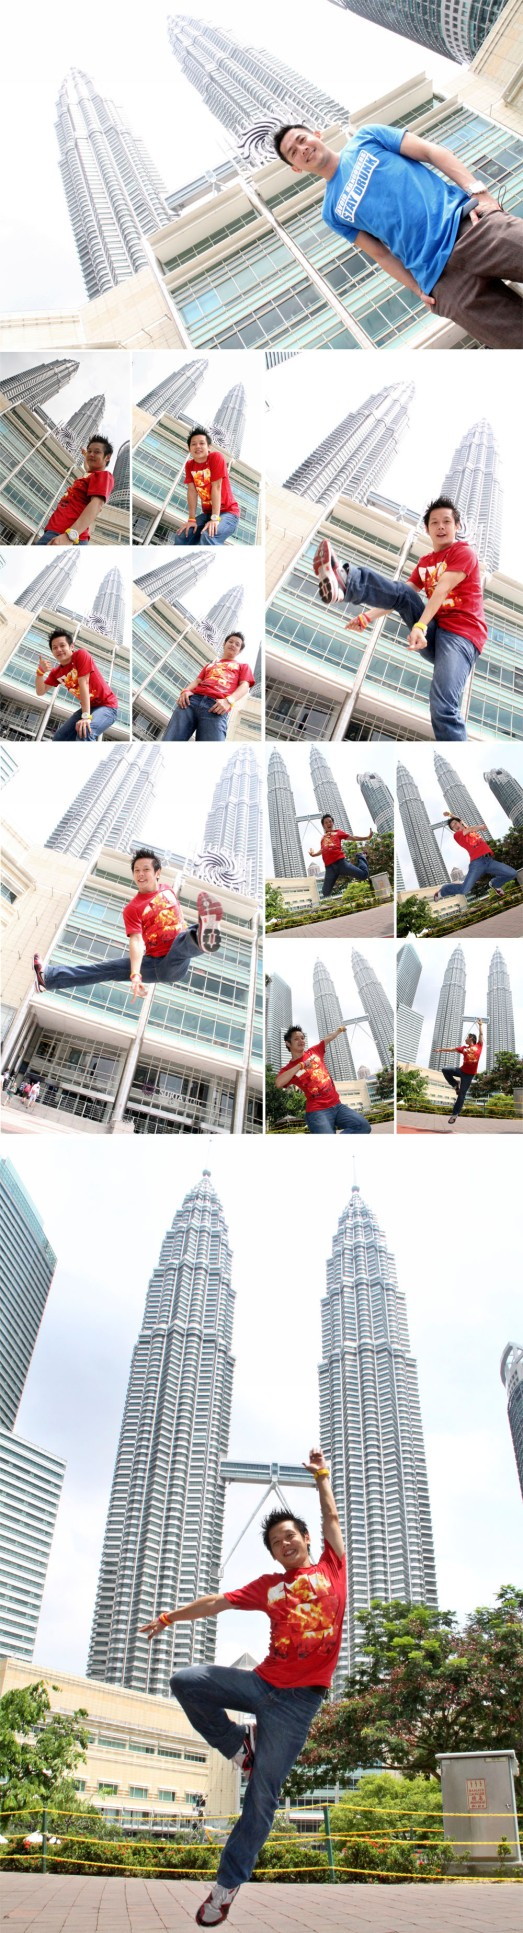 128 MORNING JUMP KLCC